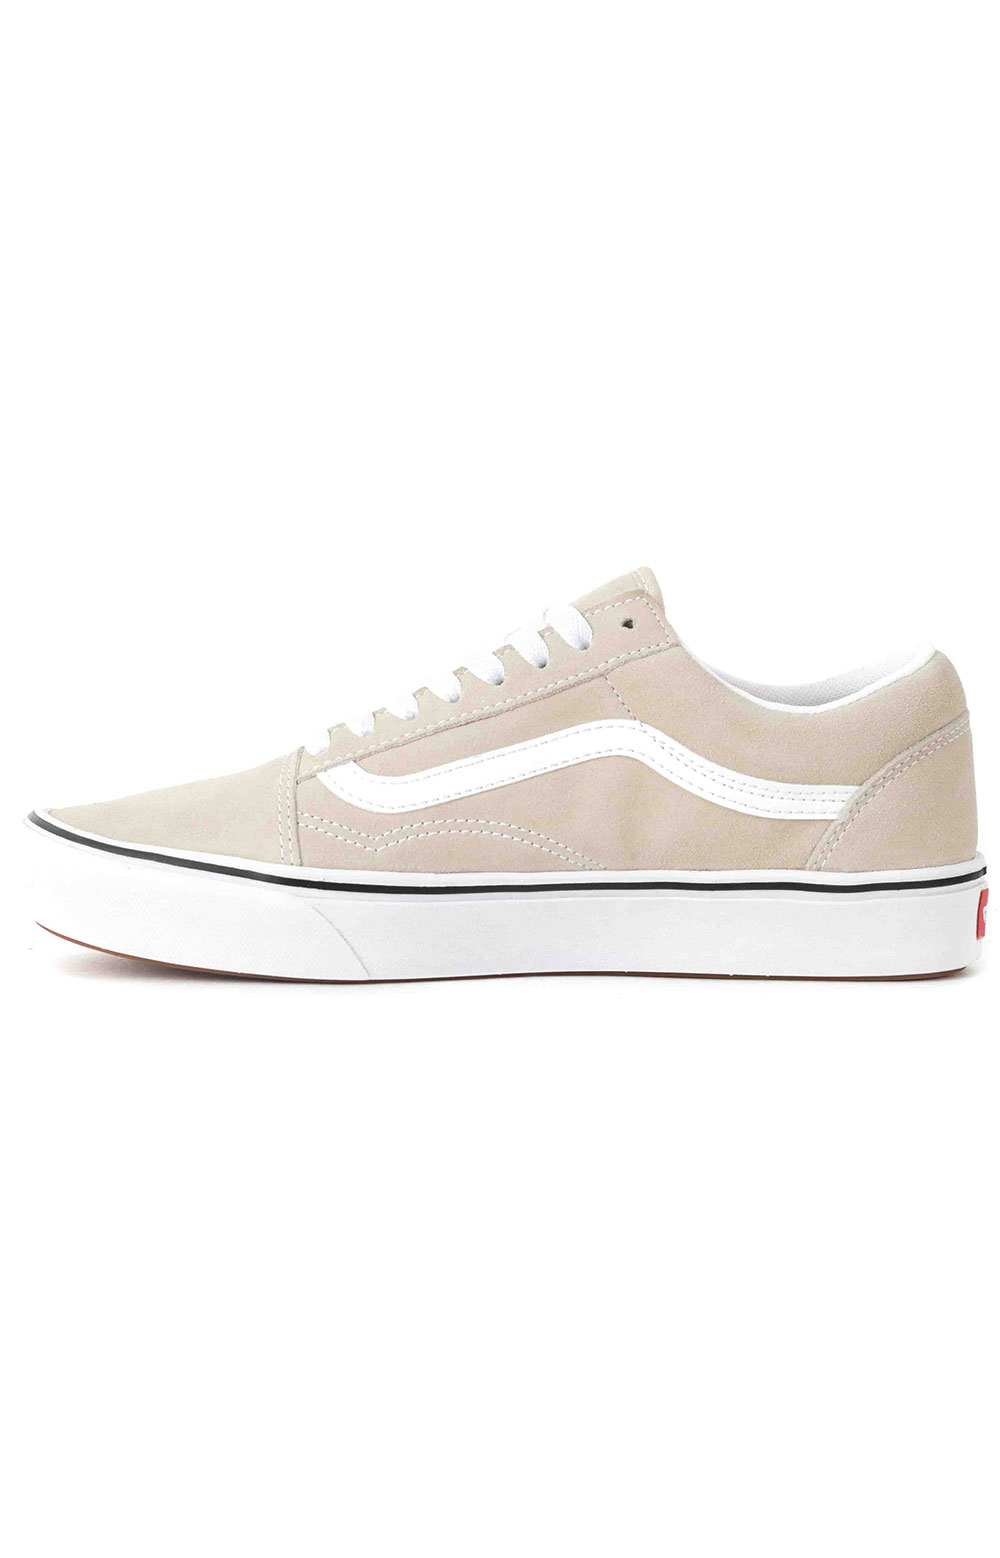 (WMA2QQ) Suede ComfyCush Old Skool Shoes - Oatmeal 4